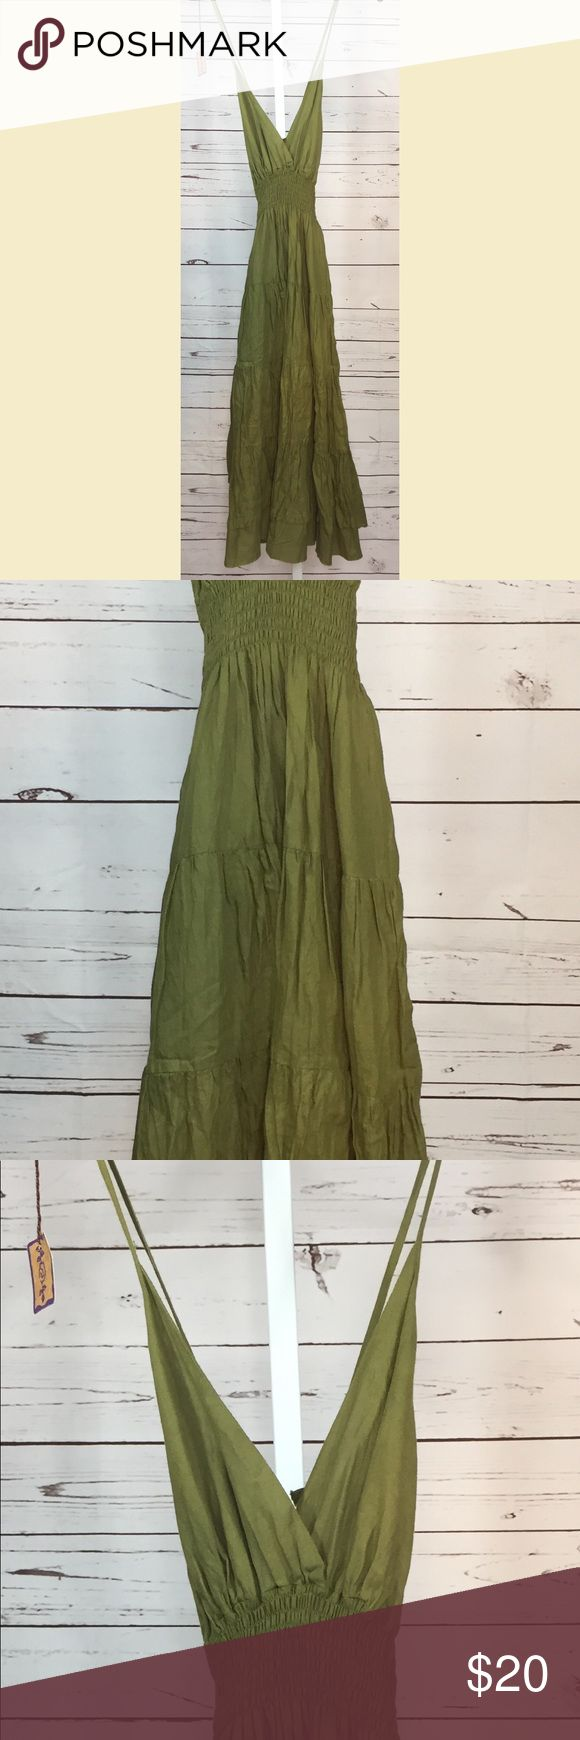 "Green Boho Hippie Festival Dress Medium NEW Green Sleeveless Spaghetti Strap Boho Hippie Dress. Size Medium. Smocked Waist. Full length skirt. 100% Cotton. 45"" long. New with tags - Unworn. Unbranded. Perfect for Summer Music Festivals and concerts, or casual wear. I ship same or next day from a smoke free home. I try to describe items honestly and price them fairly. Feel free to make an offer or ask any questions. I'm happy to help. I feel this dress runs a bit smaller than a traditional…"